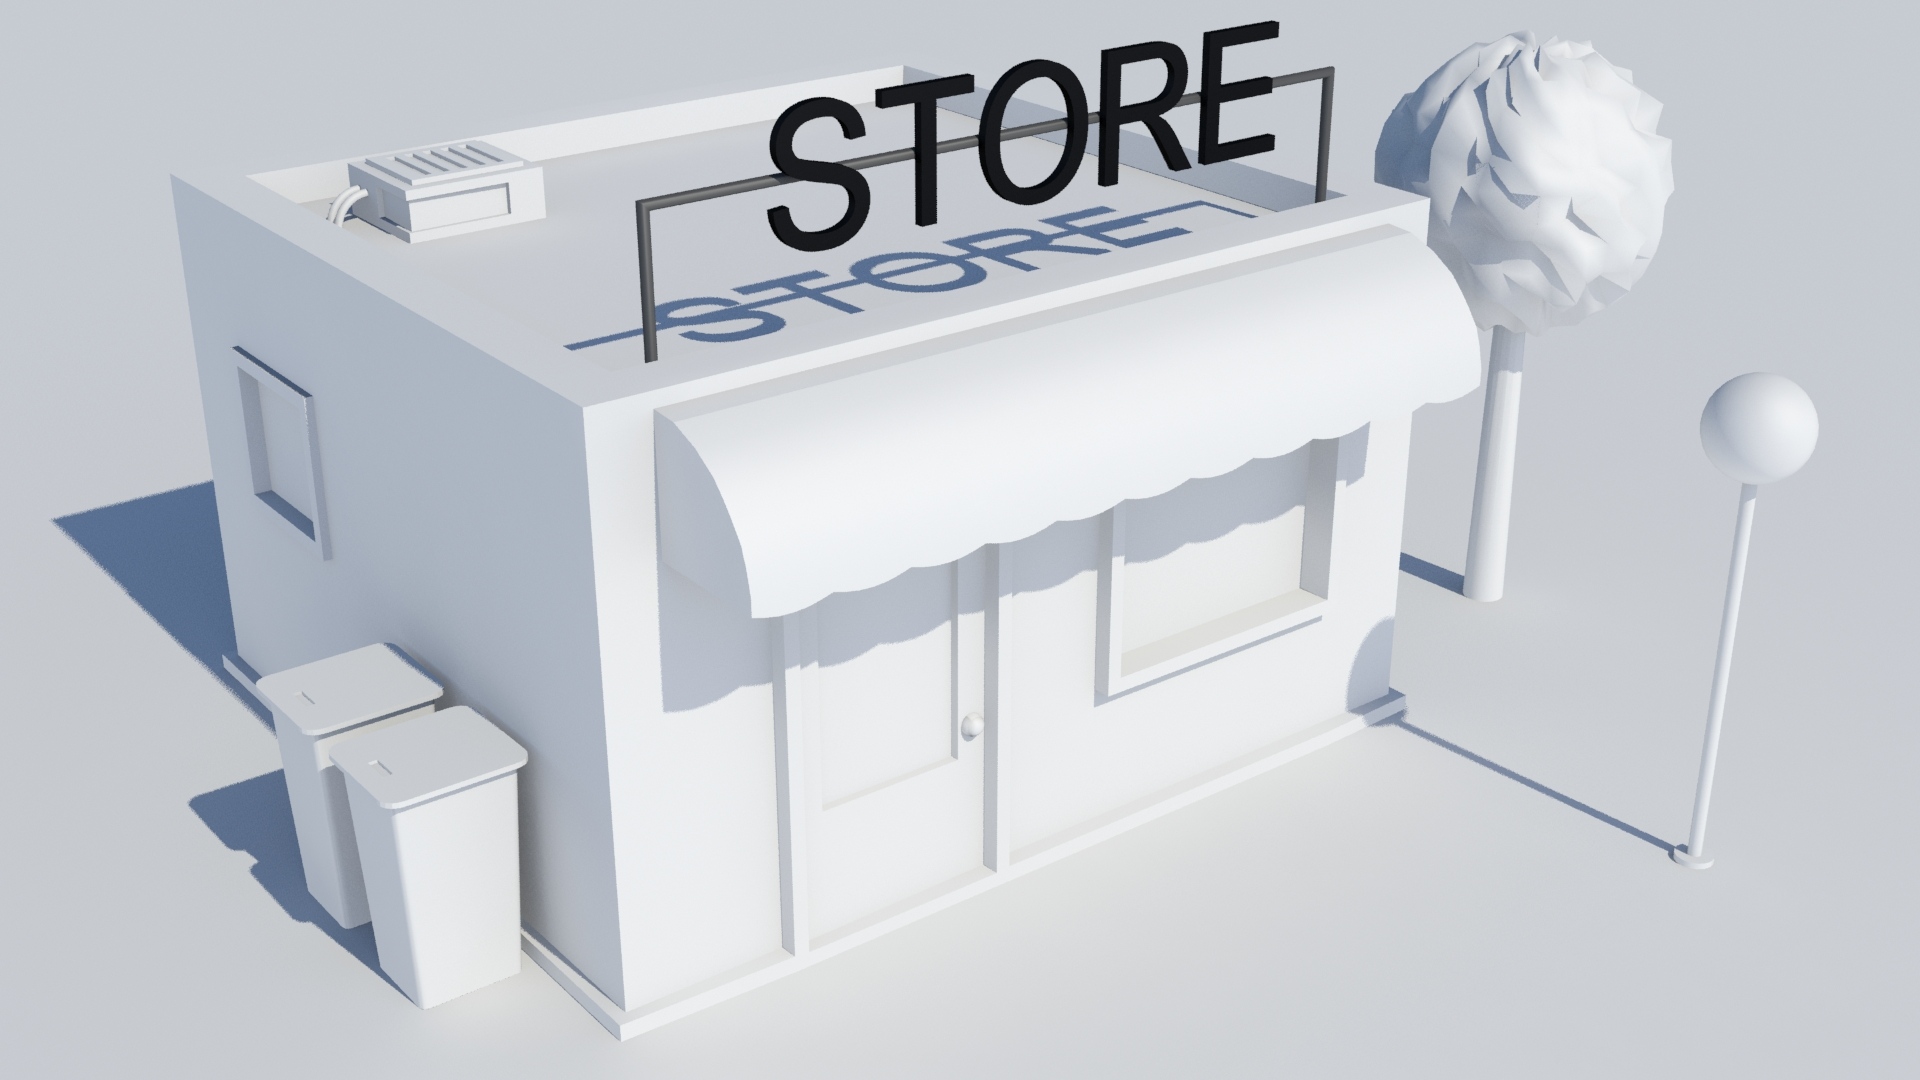 Low poly building - Store